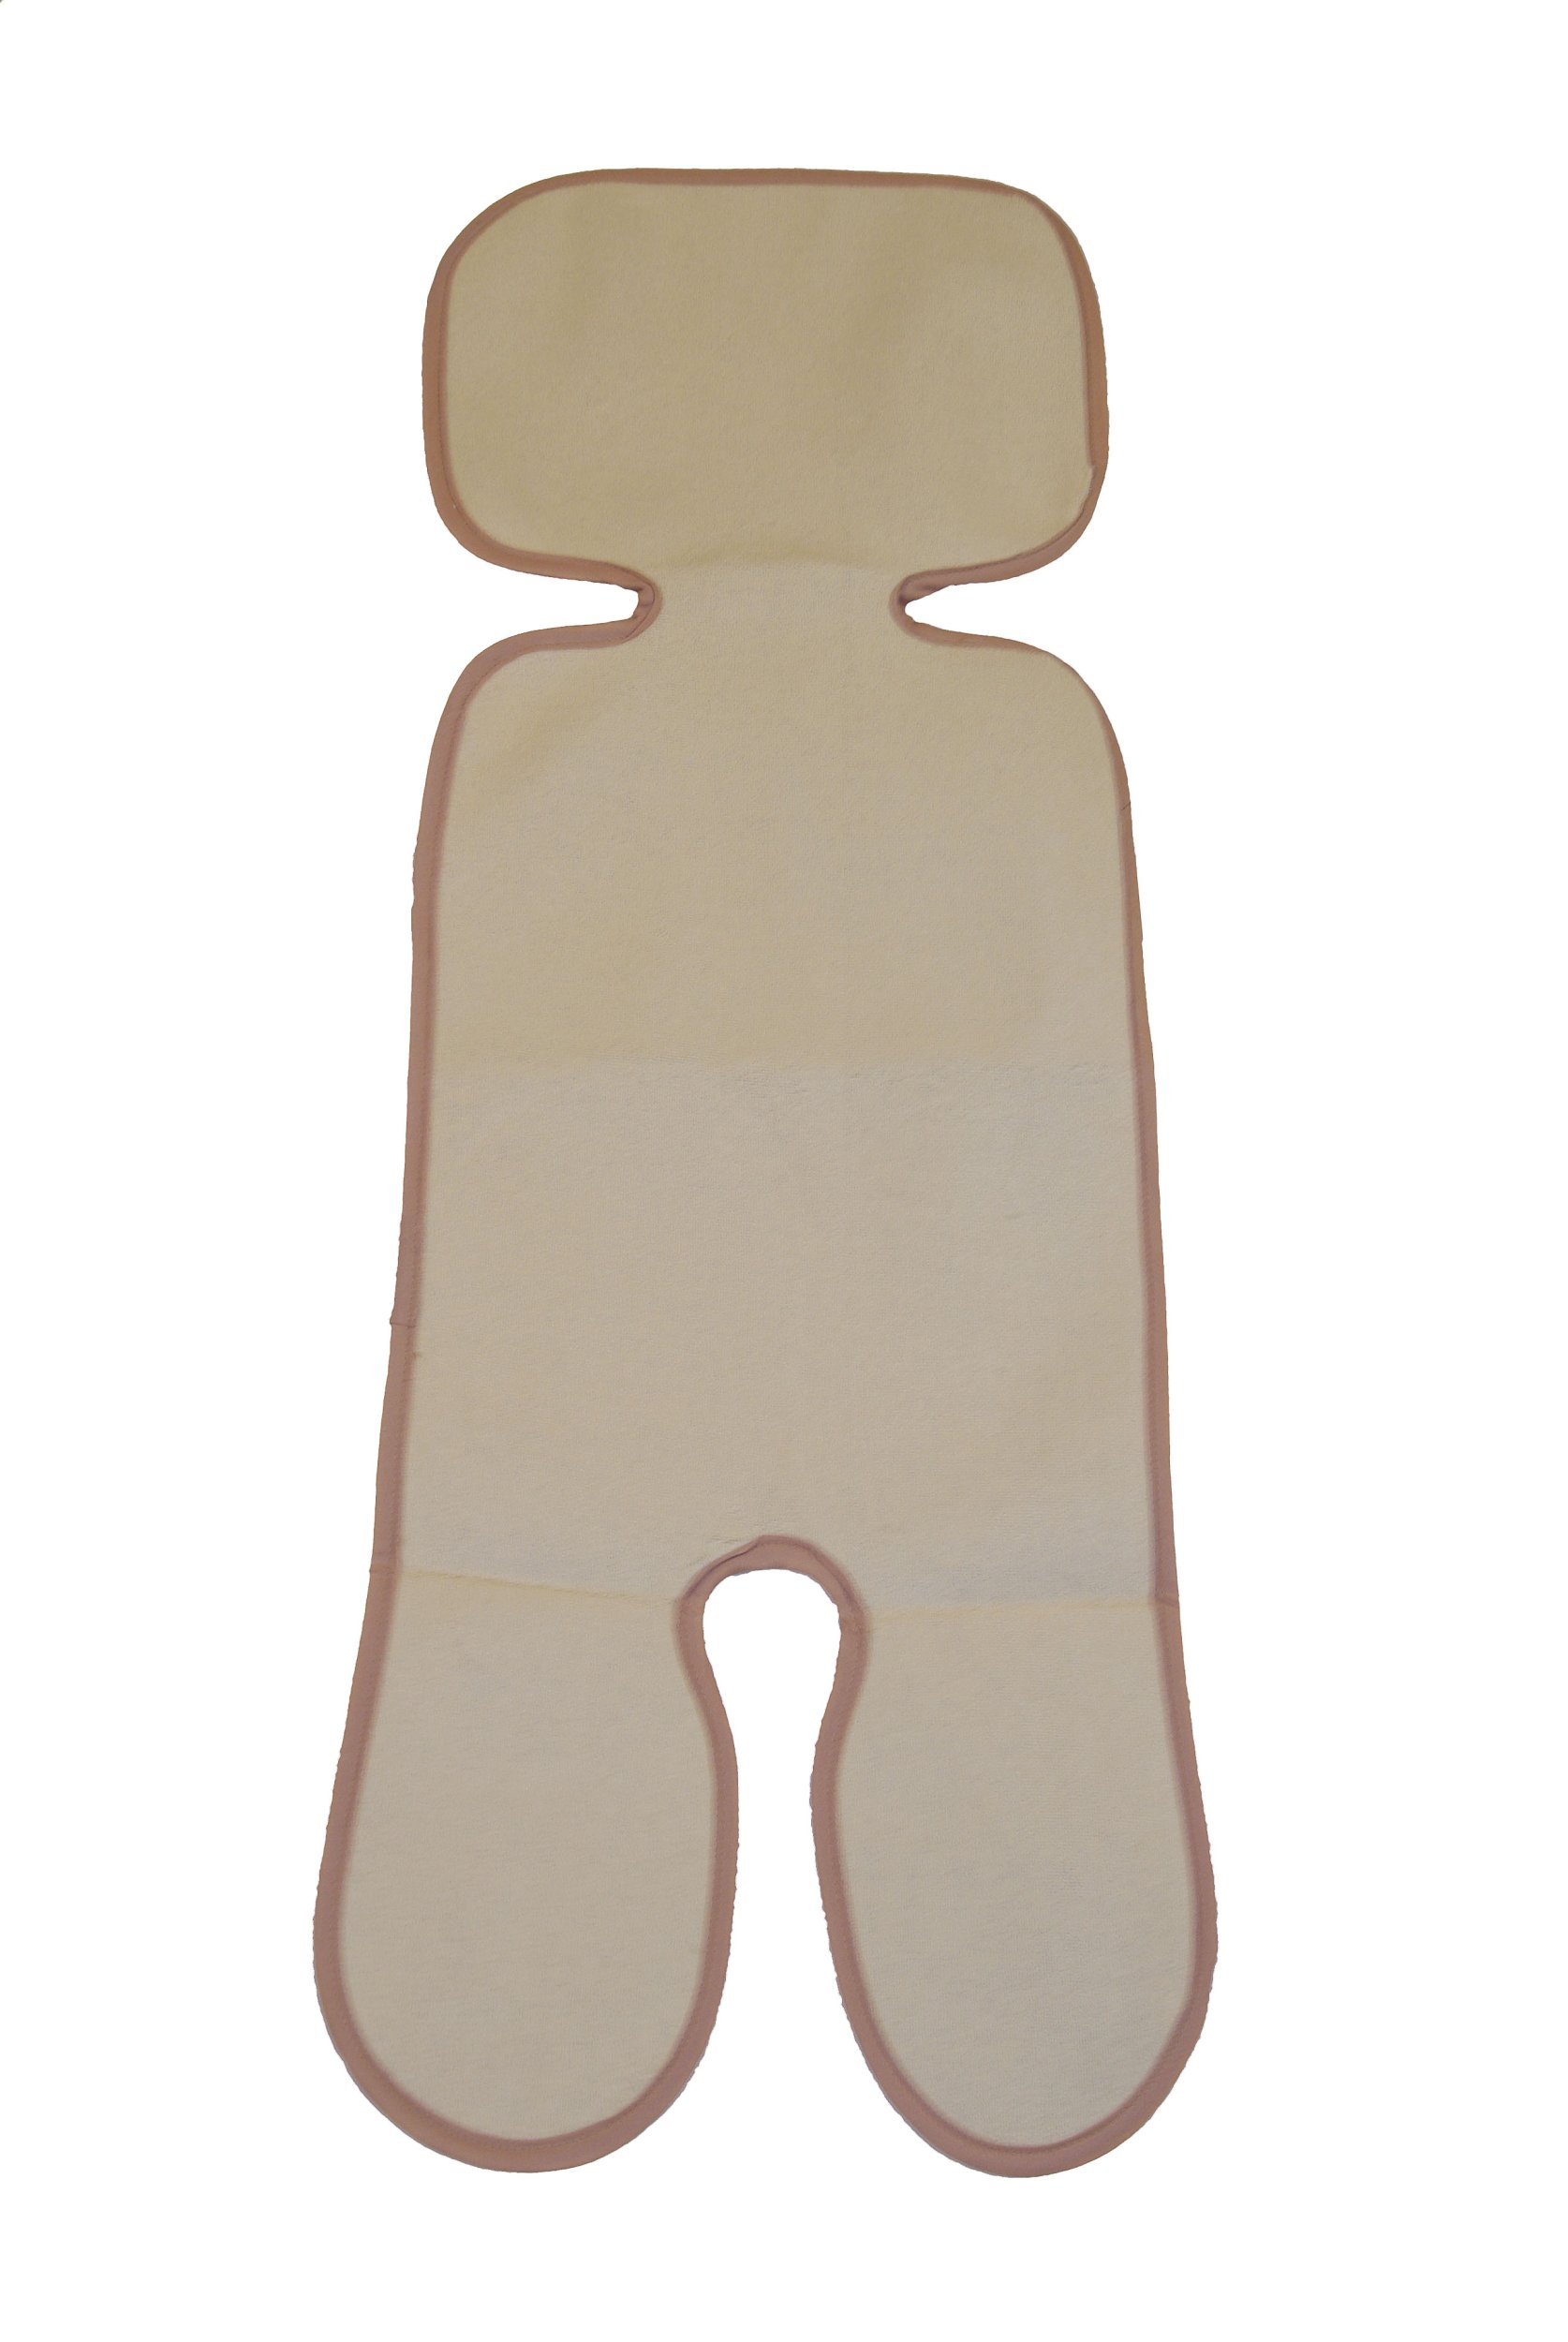 Sweat back mesh stroller seat (also used in the child seat available) beige